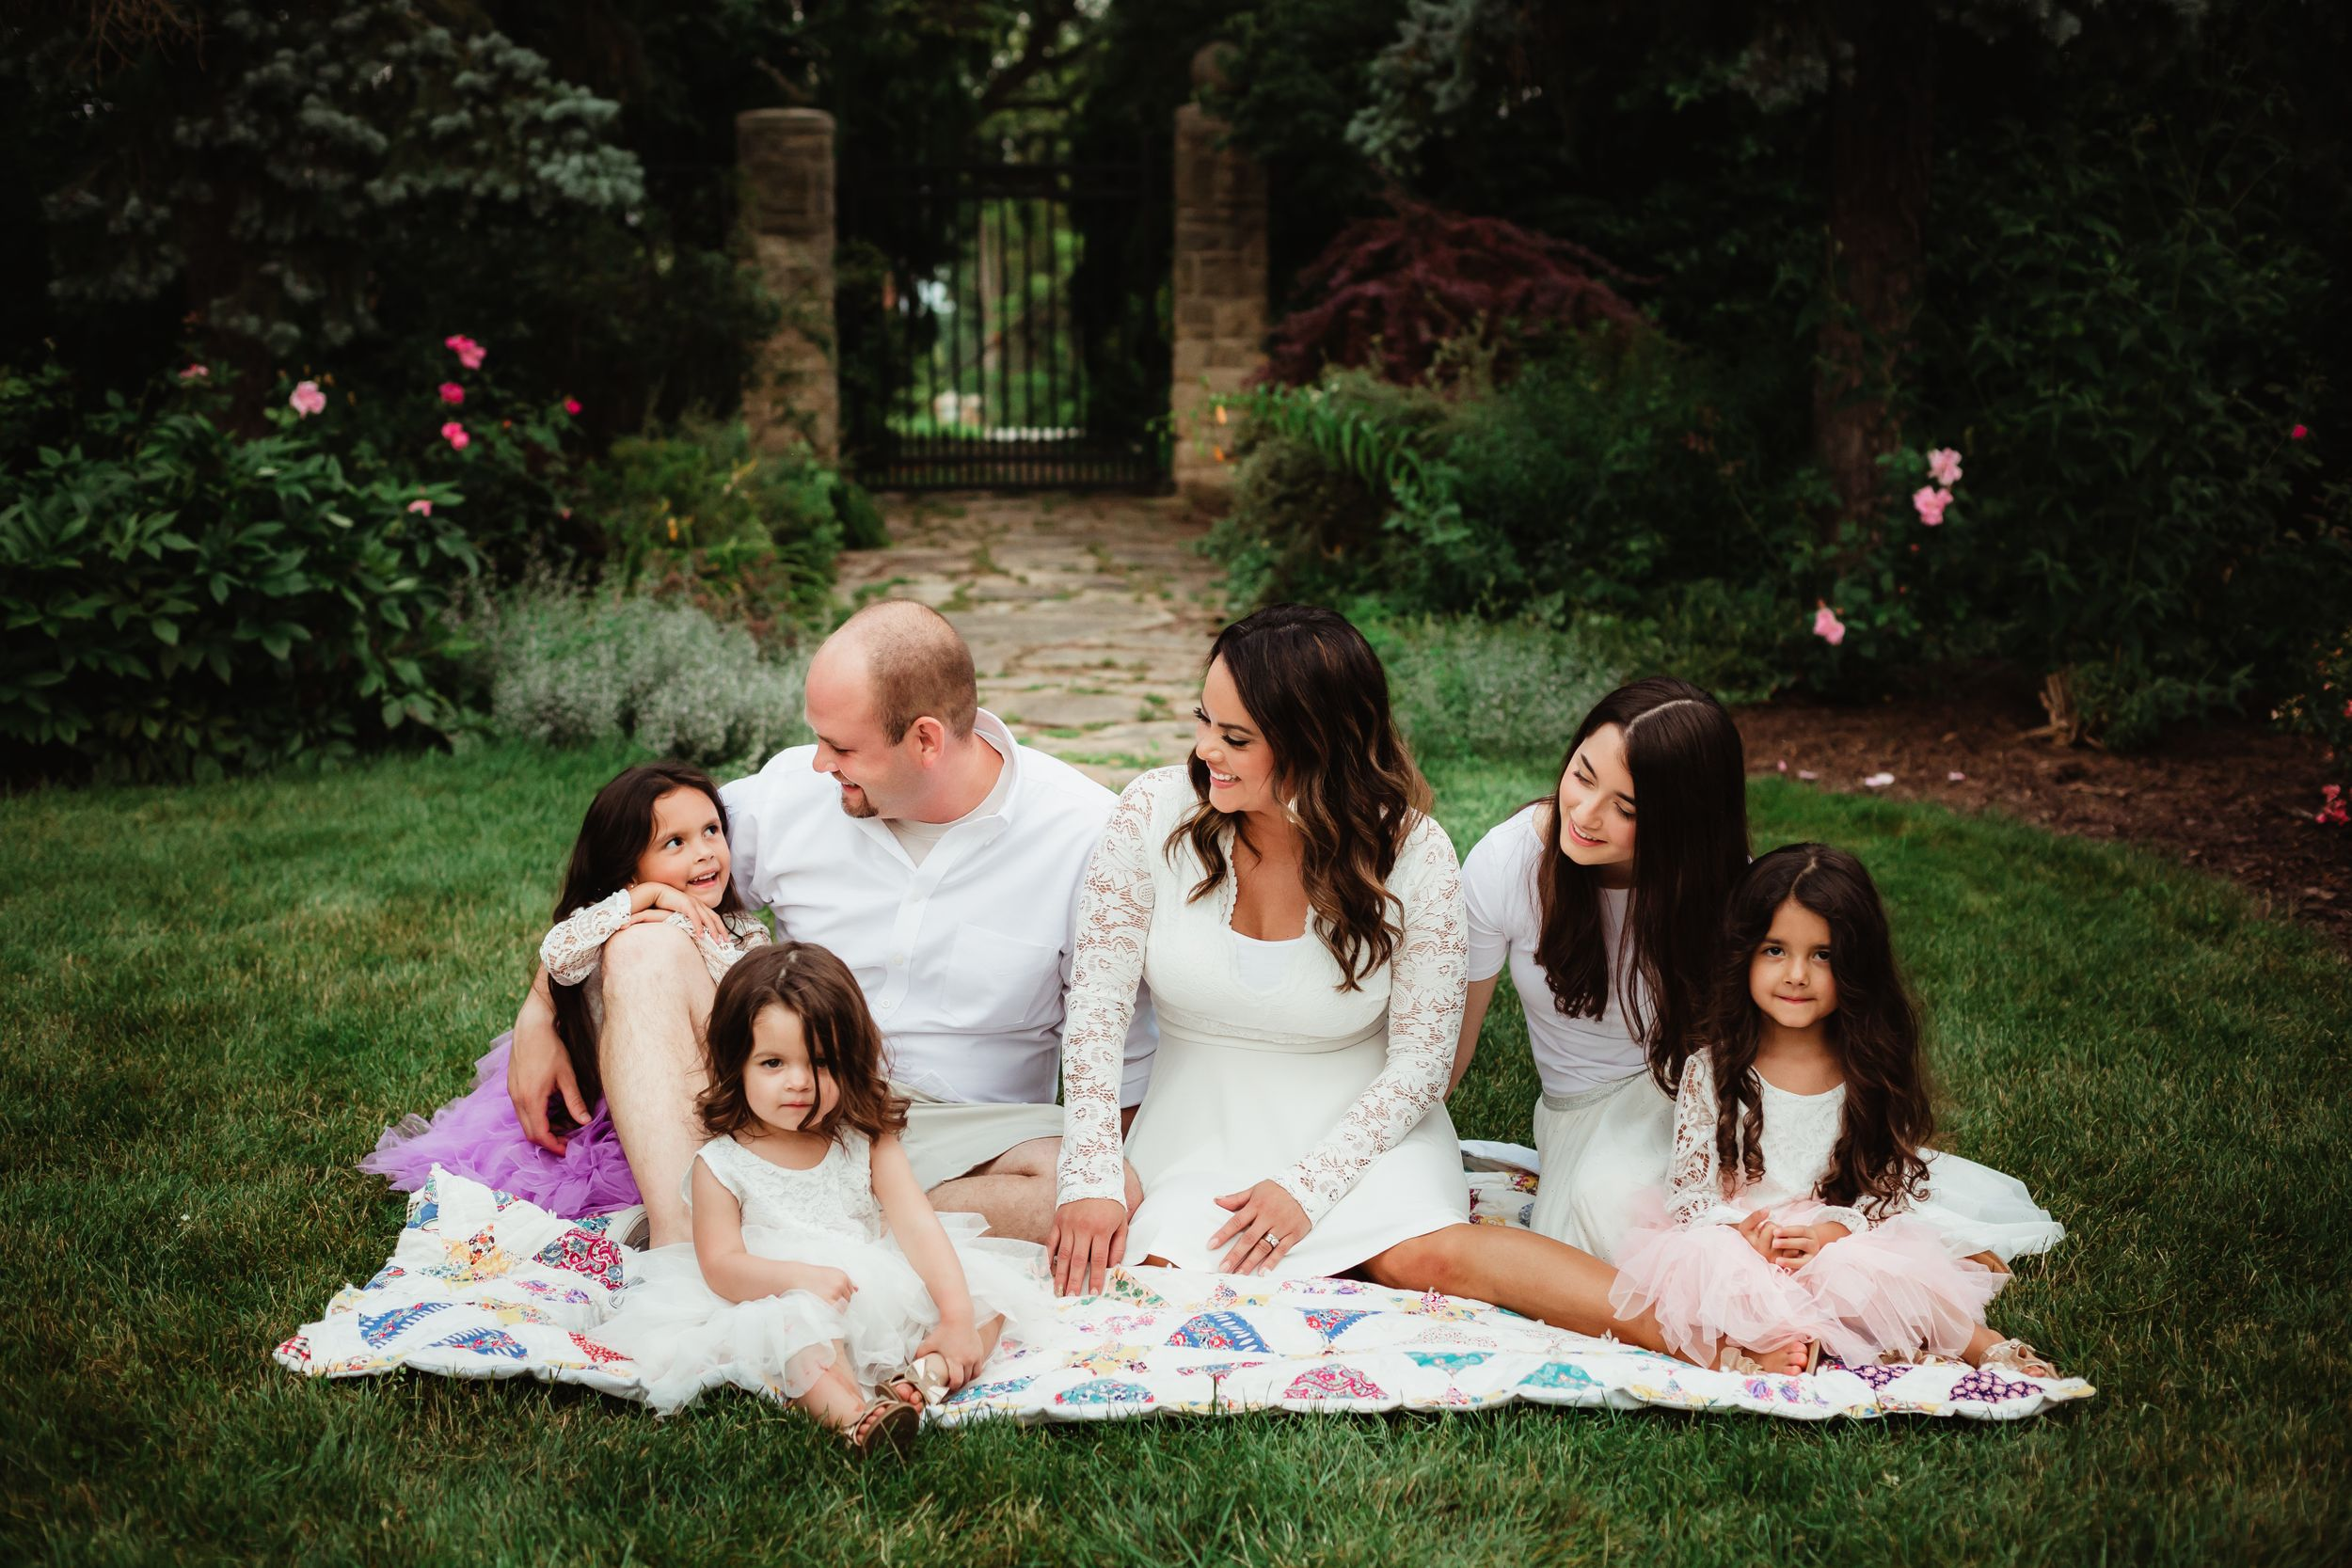 Family of six with all daughters sitting on a quilt and smiling at each other in Cooley Gardens.